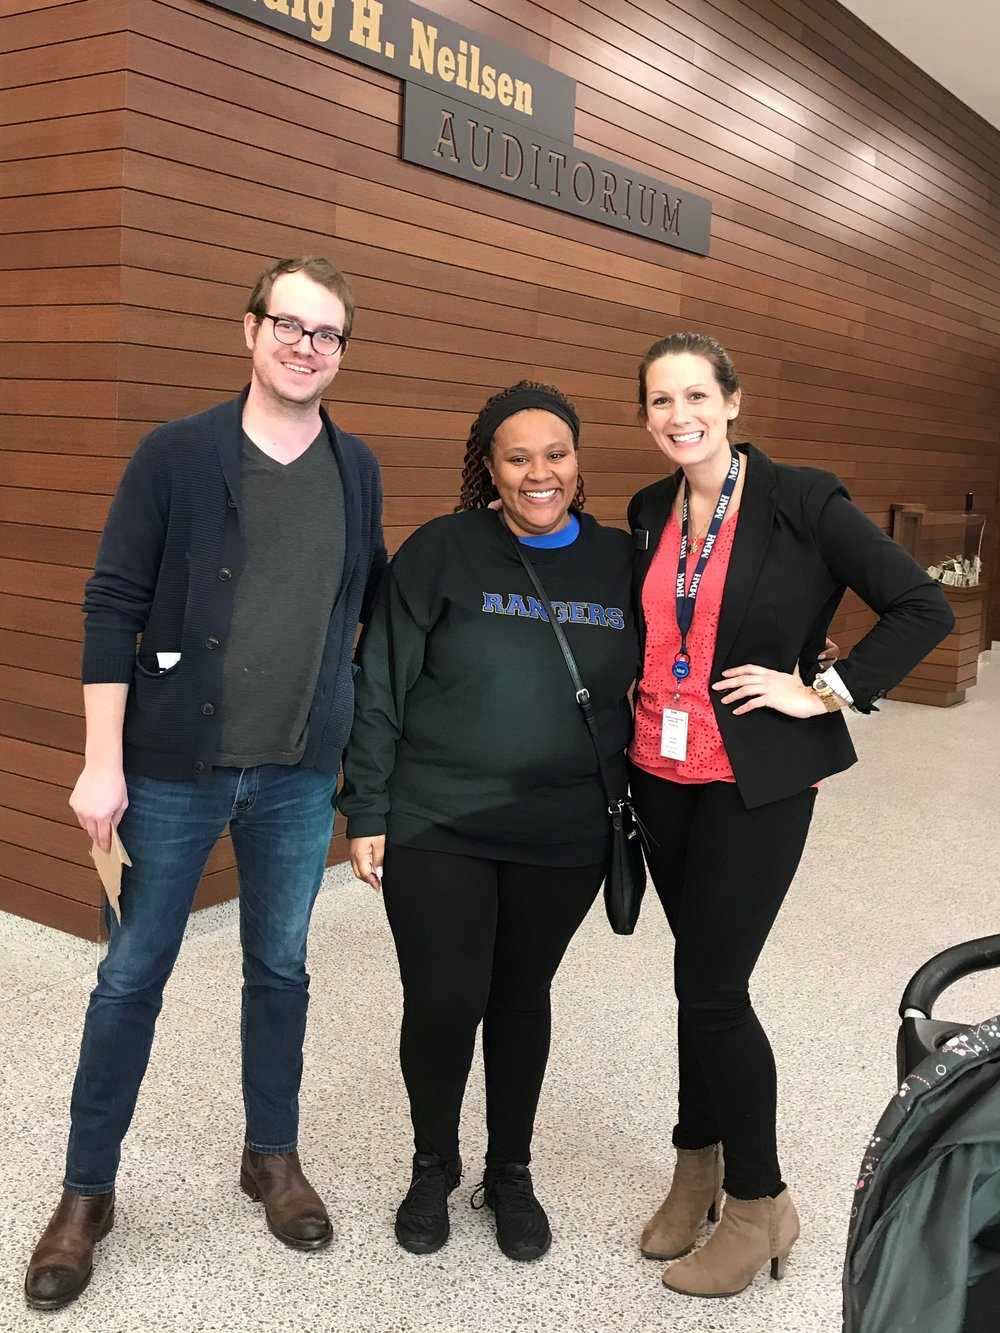 MTC alumni Jake Warren, Melishia Brooks, and Allison Peña (left to right) at the Museum of Mississippi History.